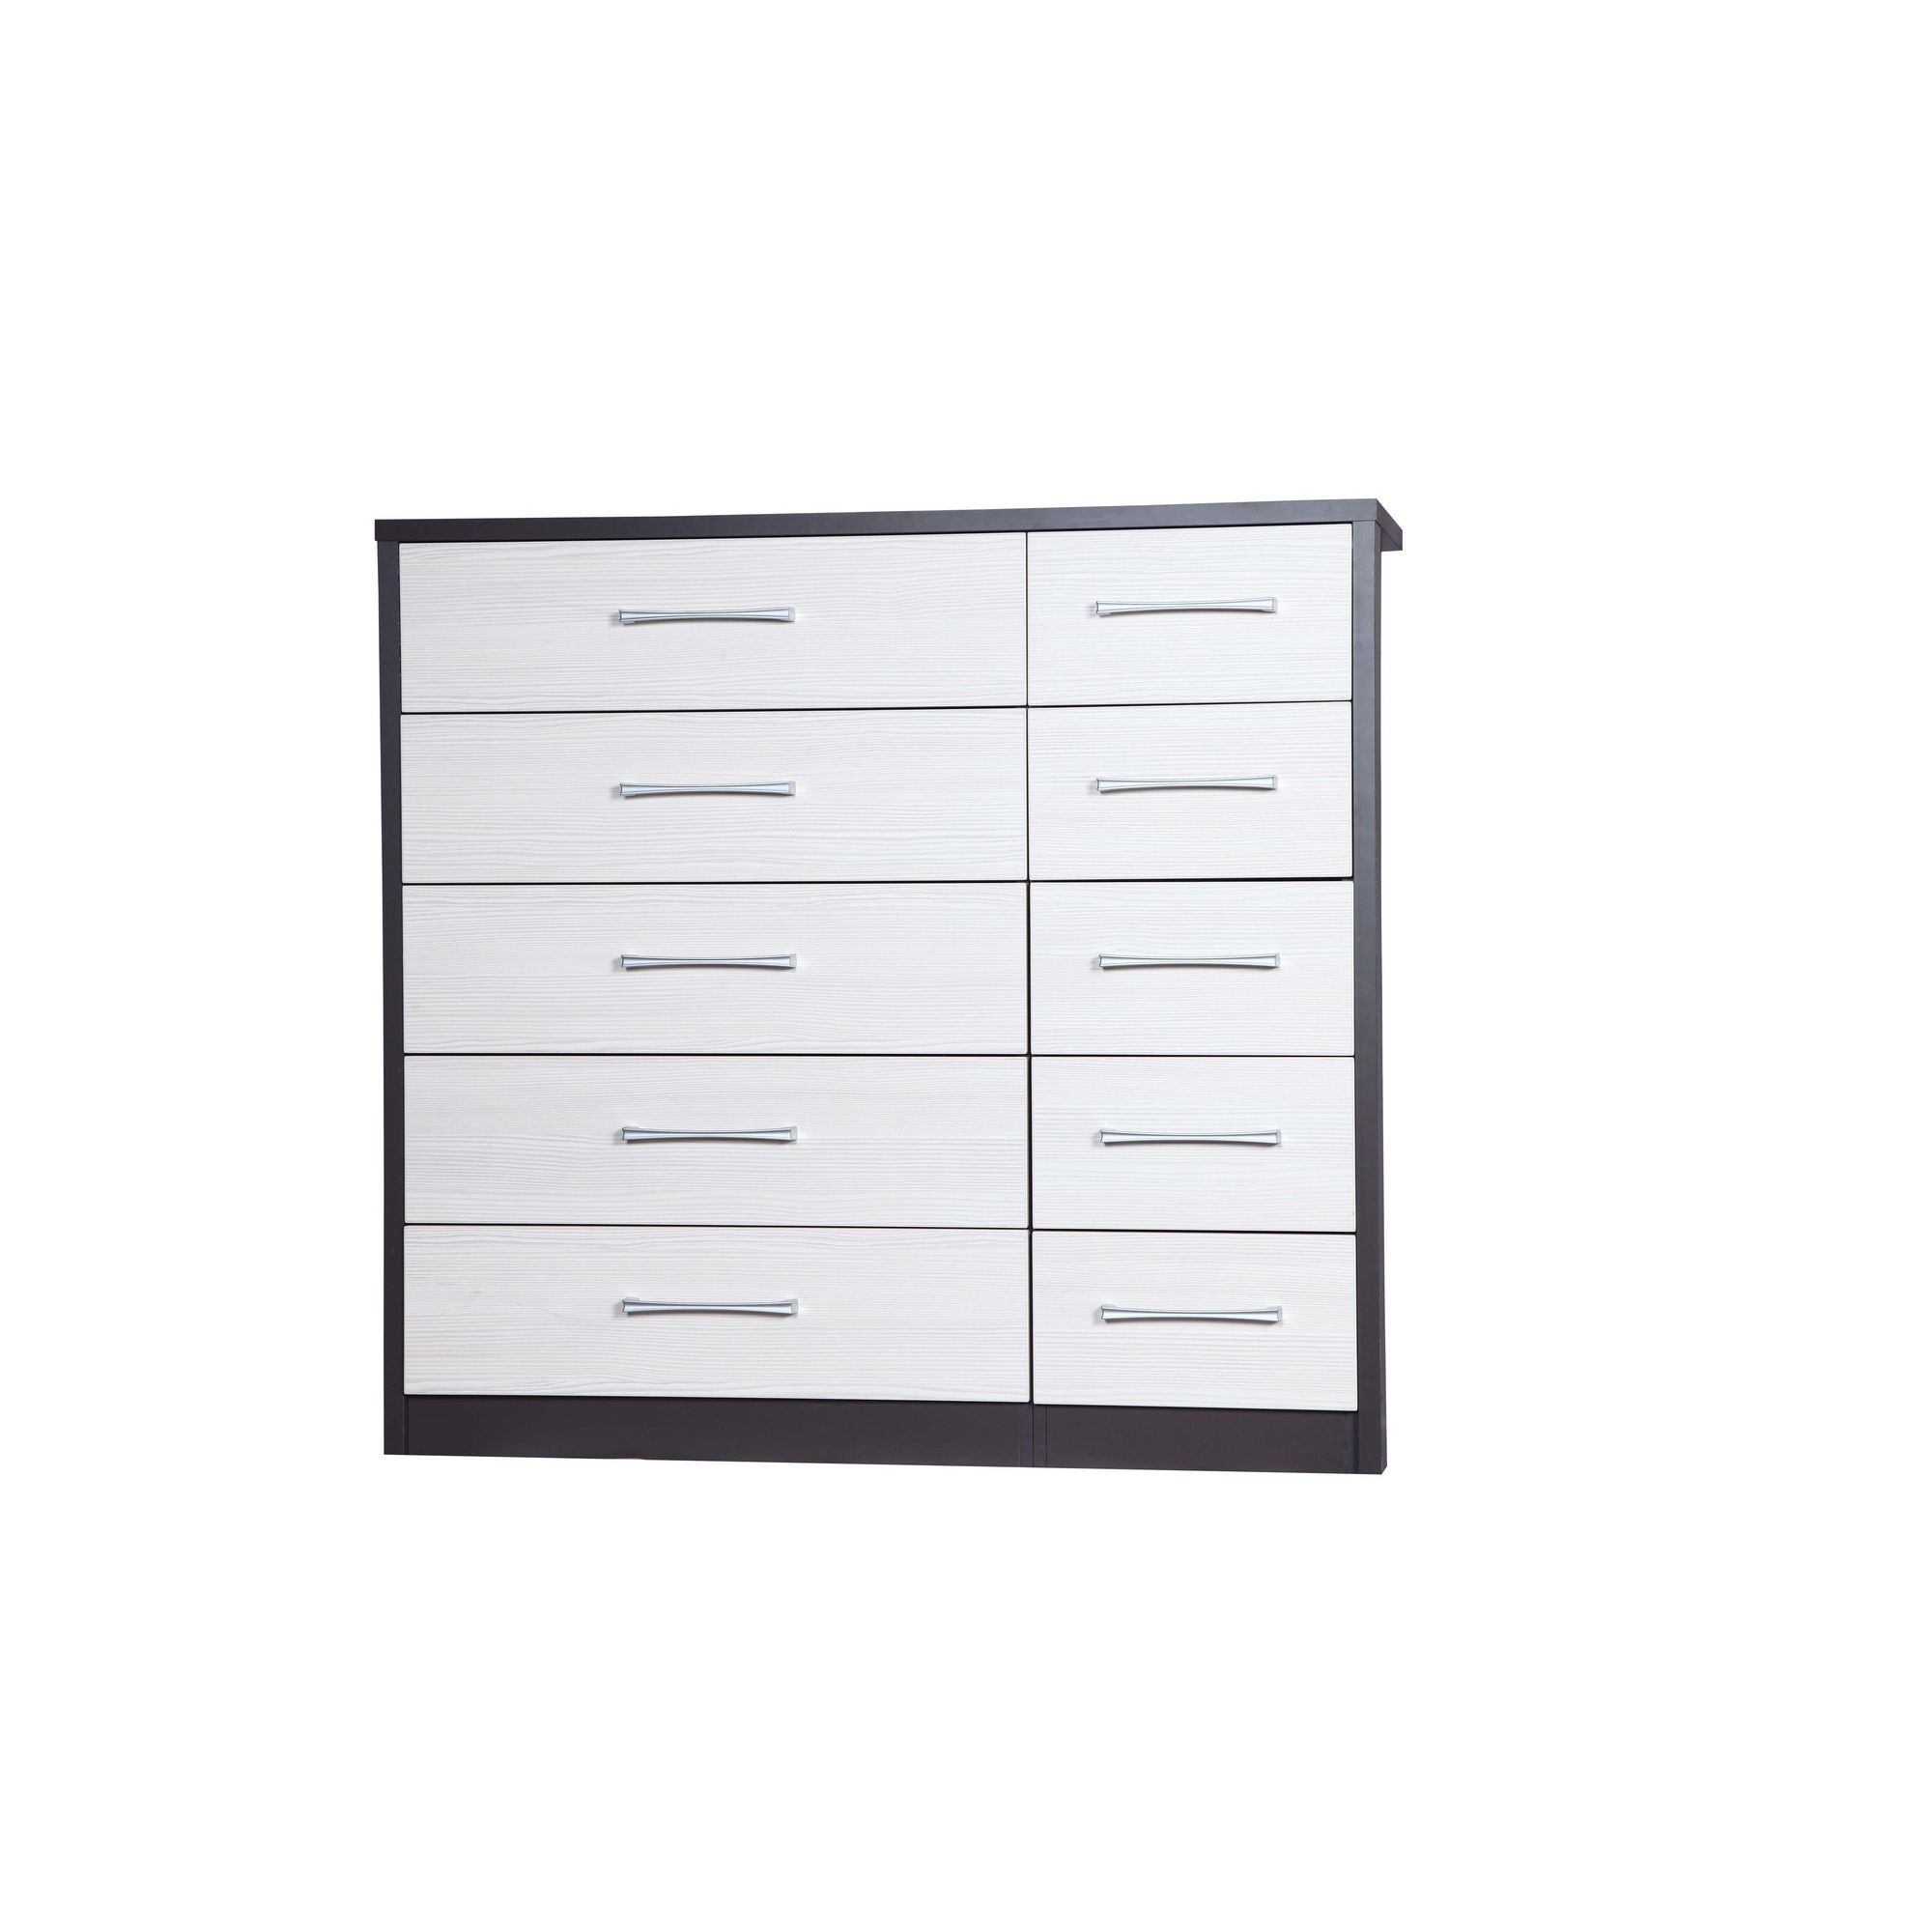 Alto Furniture Avola 10 Drawer Double Chest - Grey Carcass With White Avola at Tesco Direct